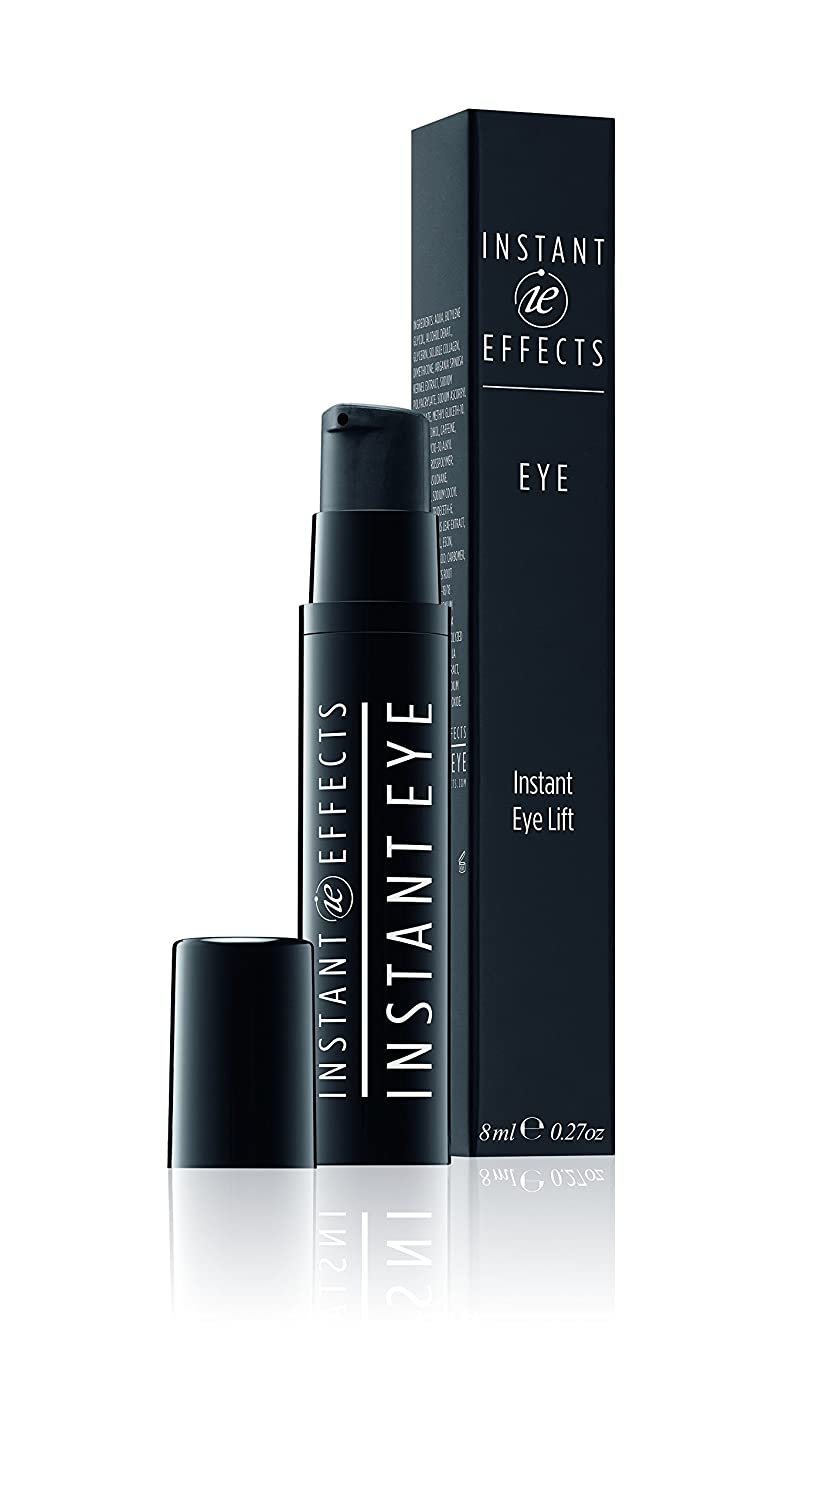 INSTANT EFFECTS INSTANT EYE LIFT 8ml, OX2 Technology, Clinicaly Proven in 15 minutes to give a 21% reduction in wrinkles and fine lines – this increased to 47% after 6 weeks, plus a 55% increase in skin elasticity, it also Diminish dark circles and r